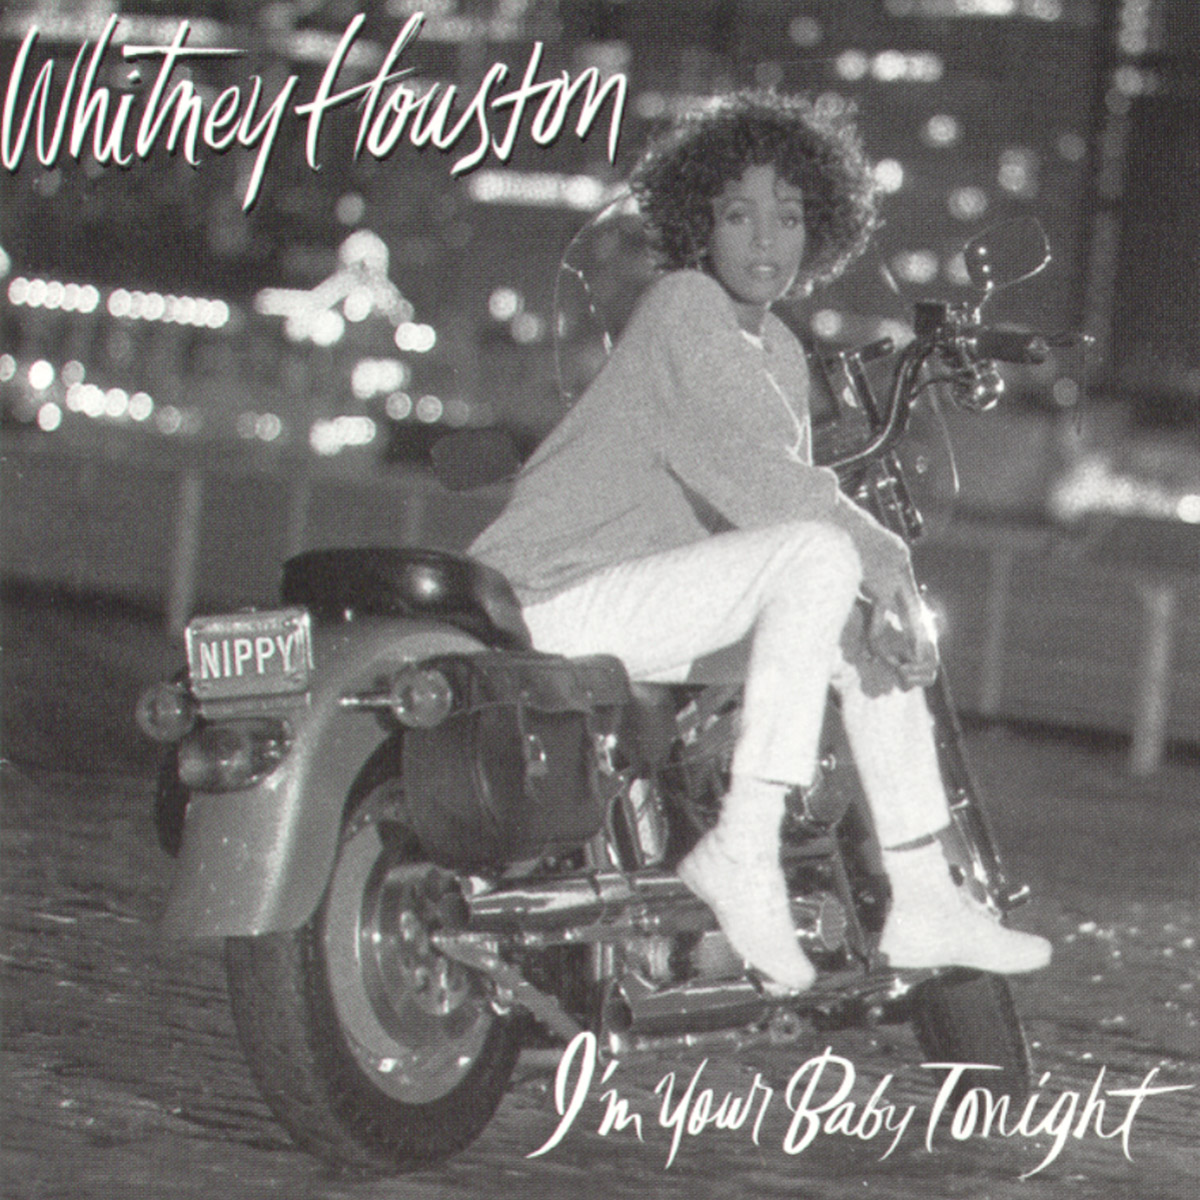 Whitney Houston - I'm Your Baby Tonight album